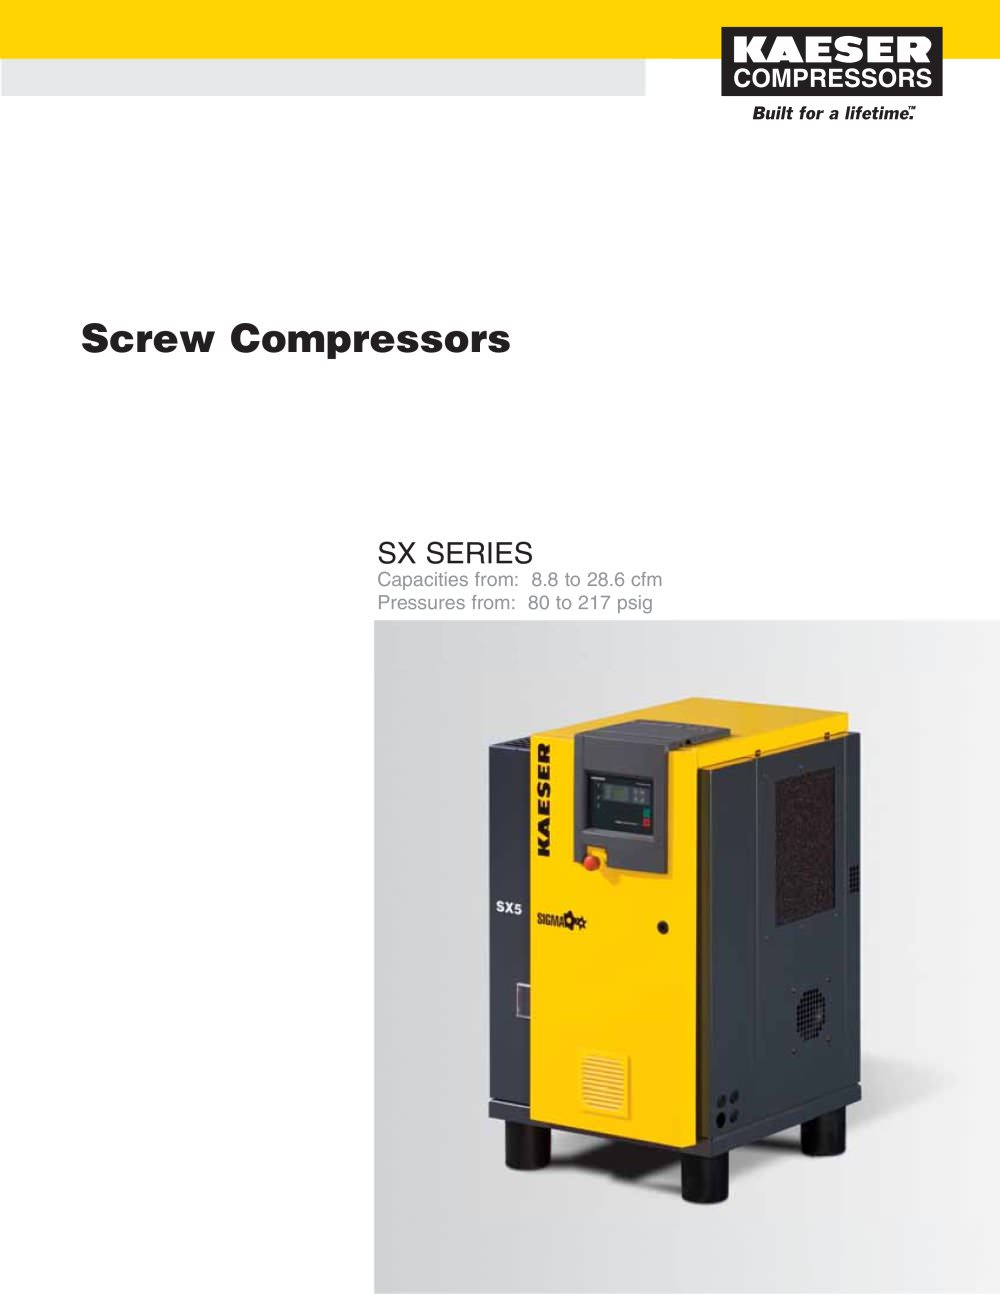 SX Series Compressors - 1 / 6 Pages